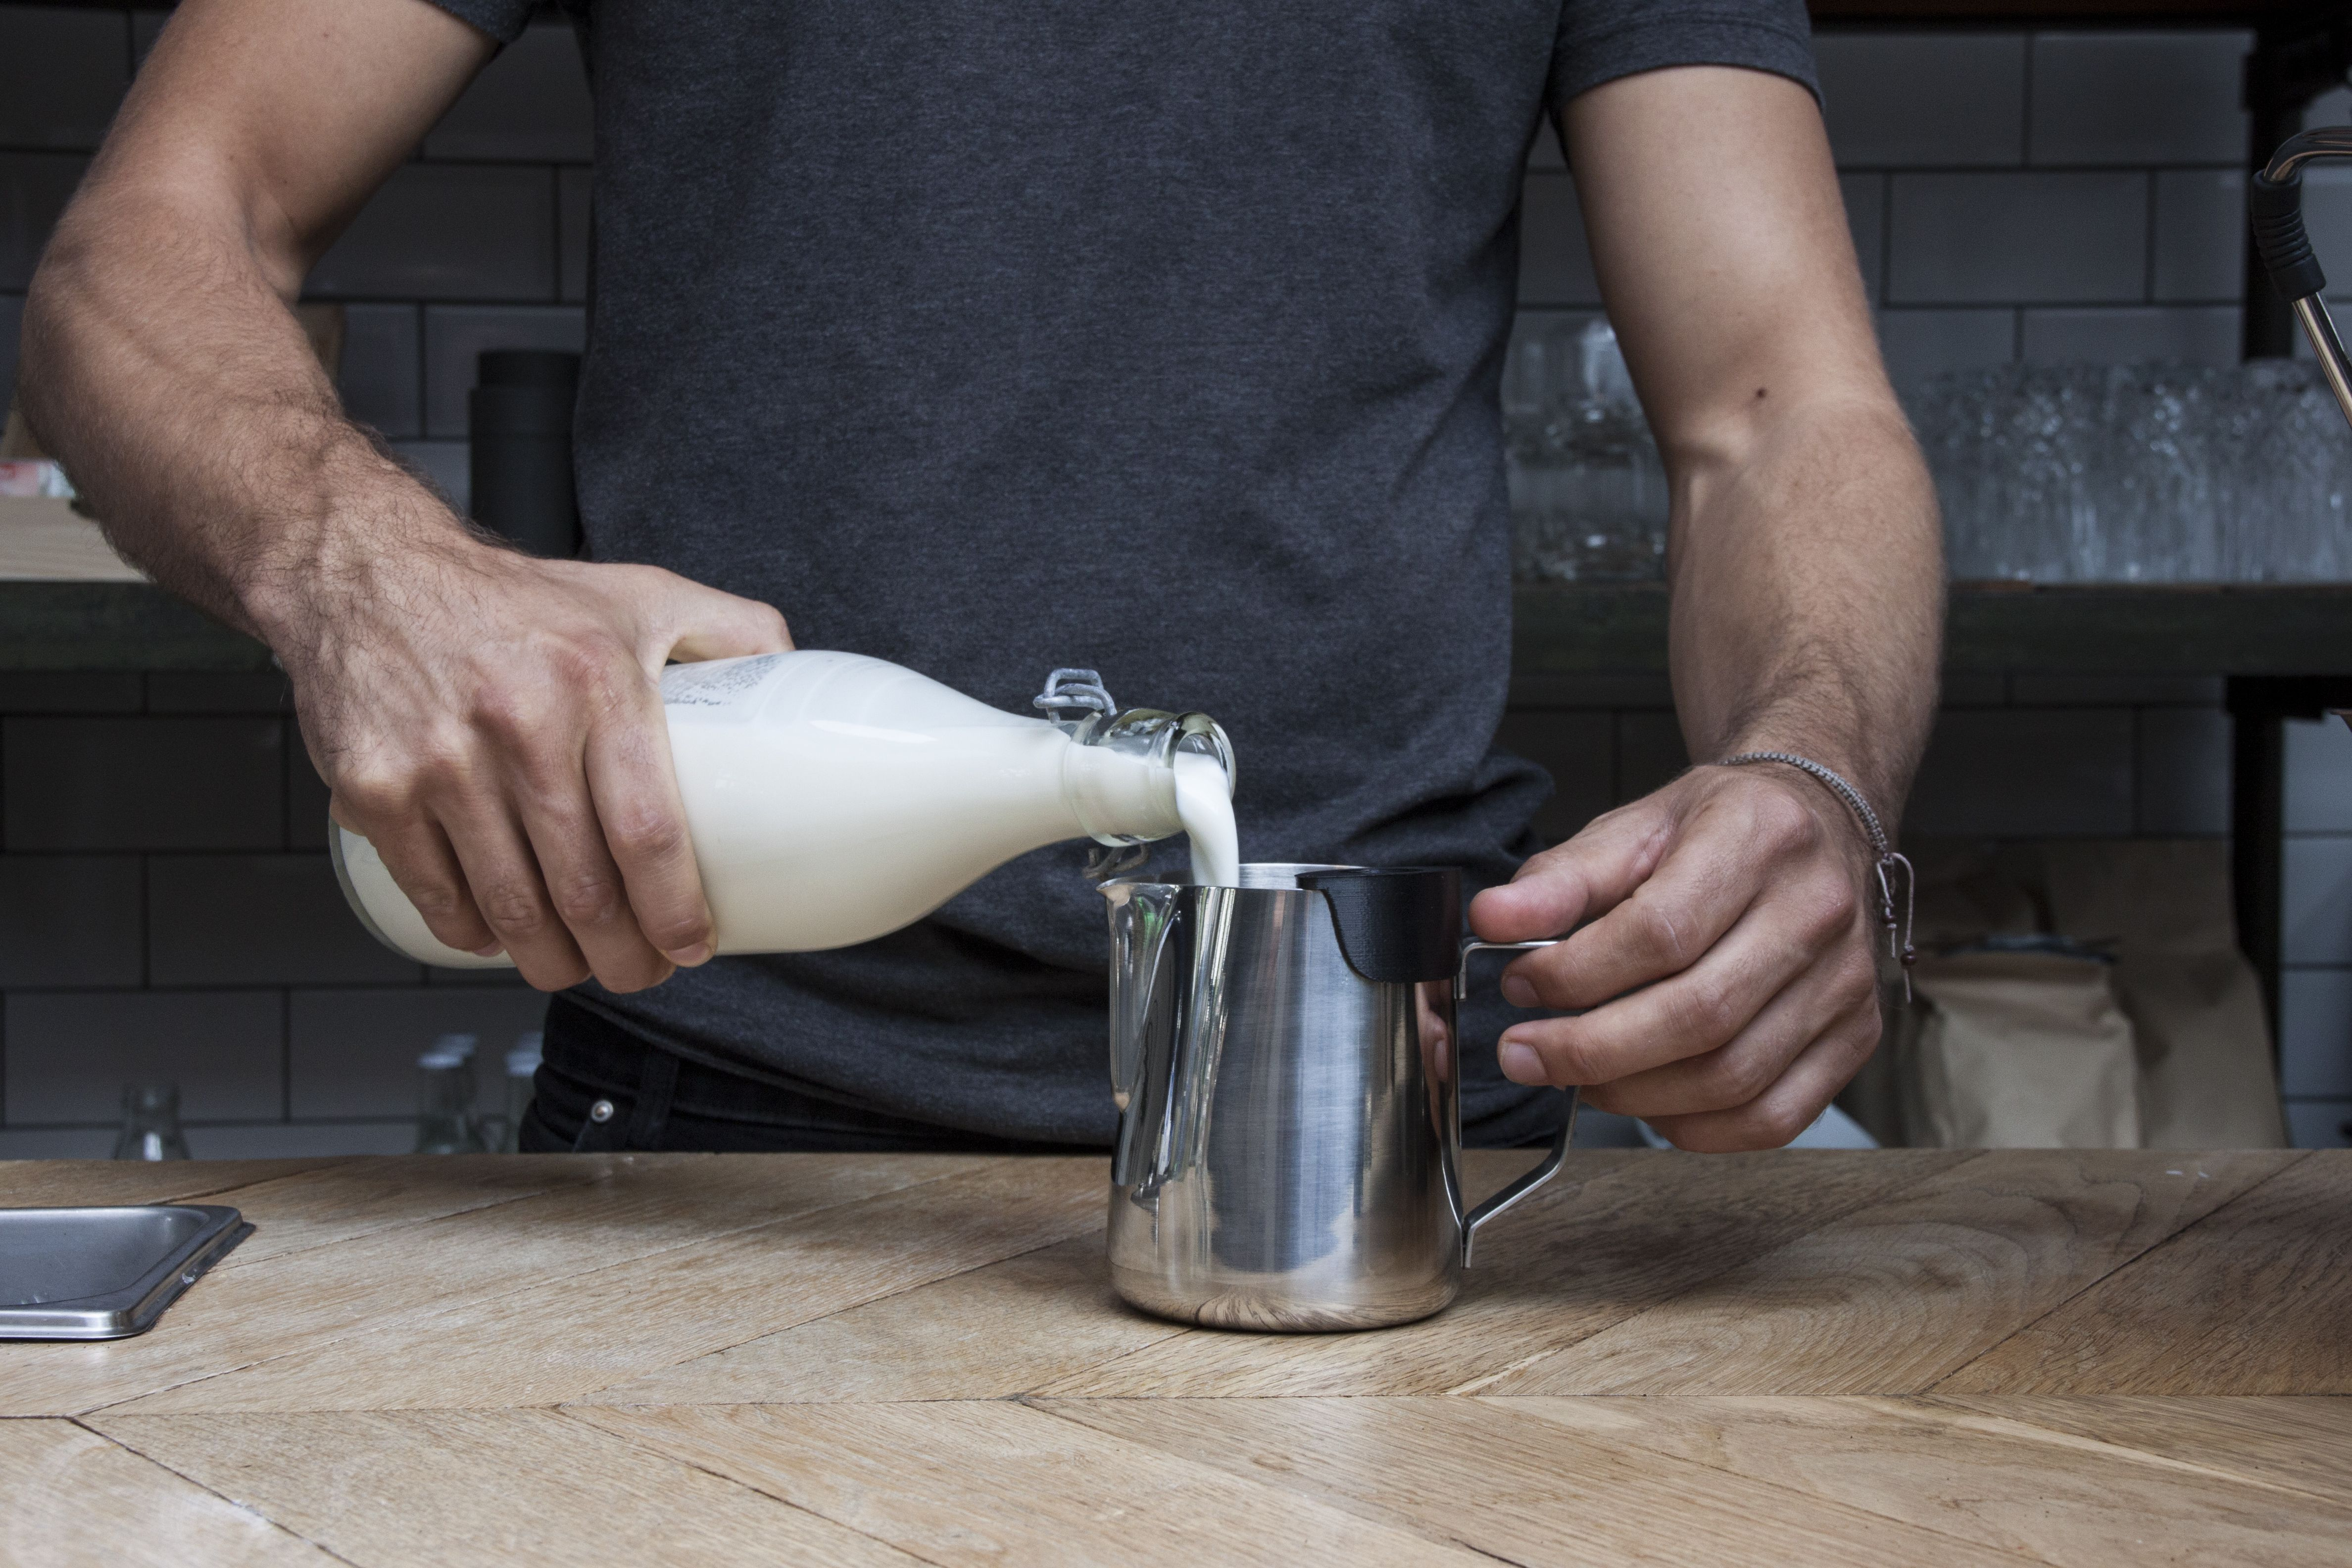 What is Foam Locus It is placed in the edge of the milk